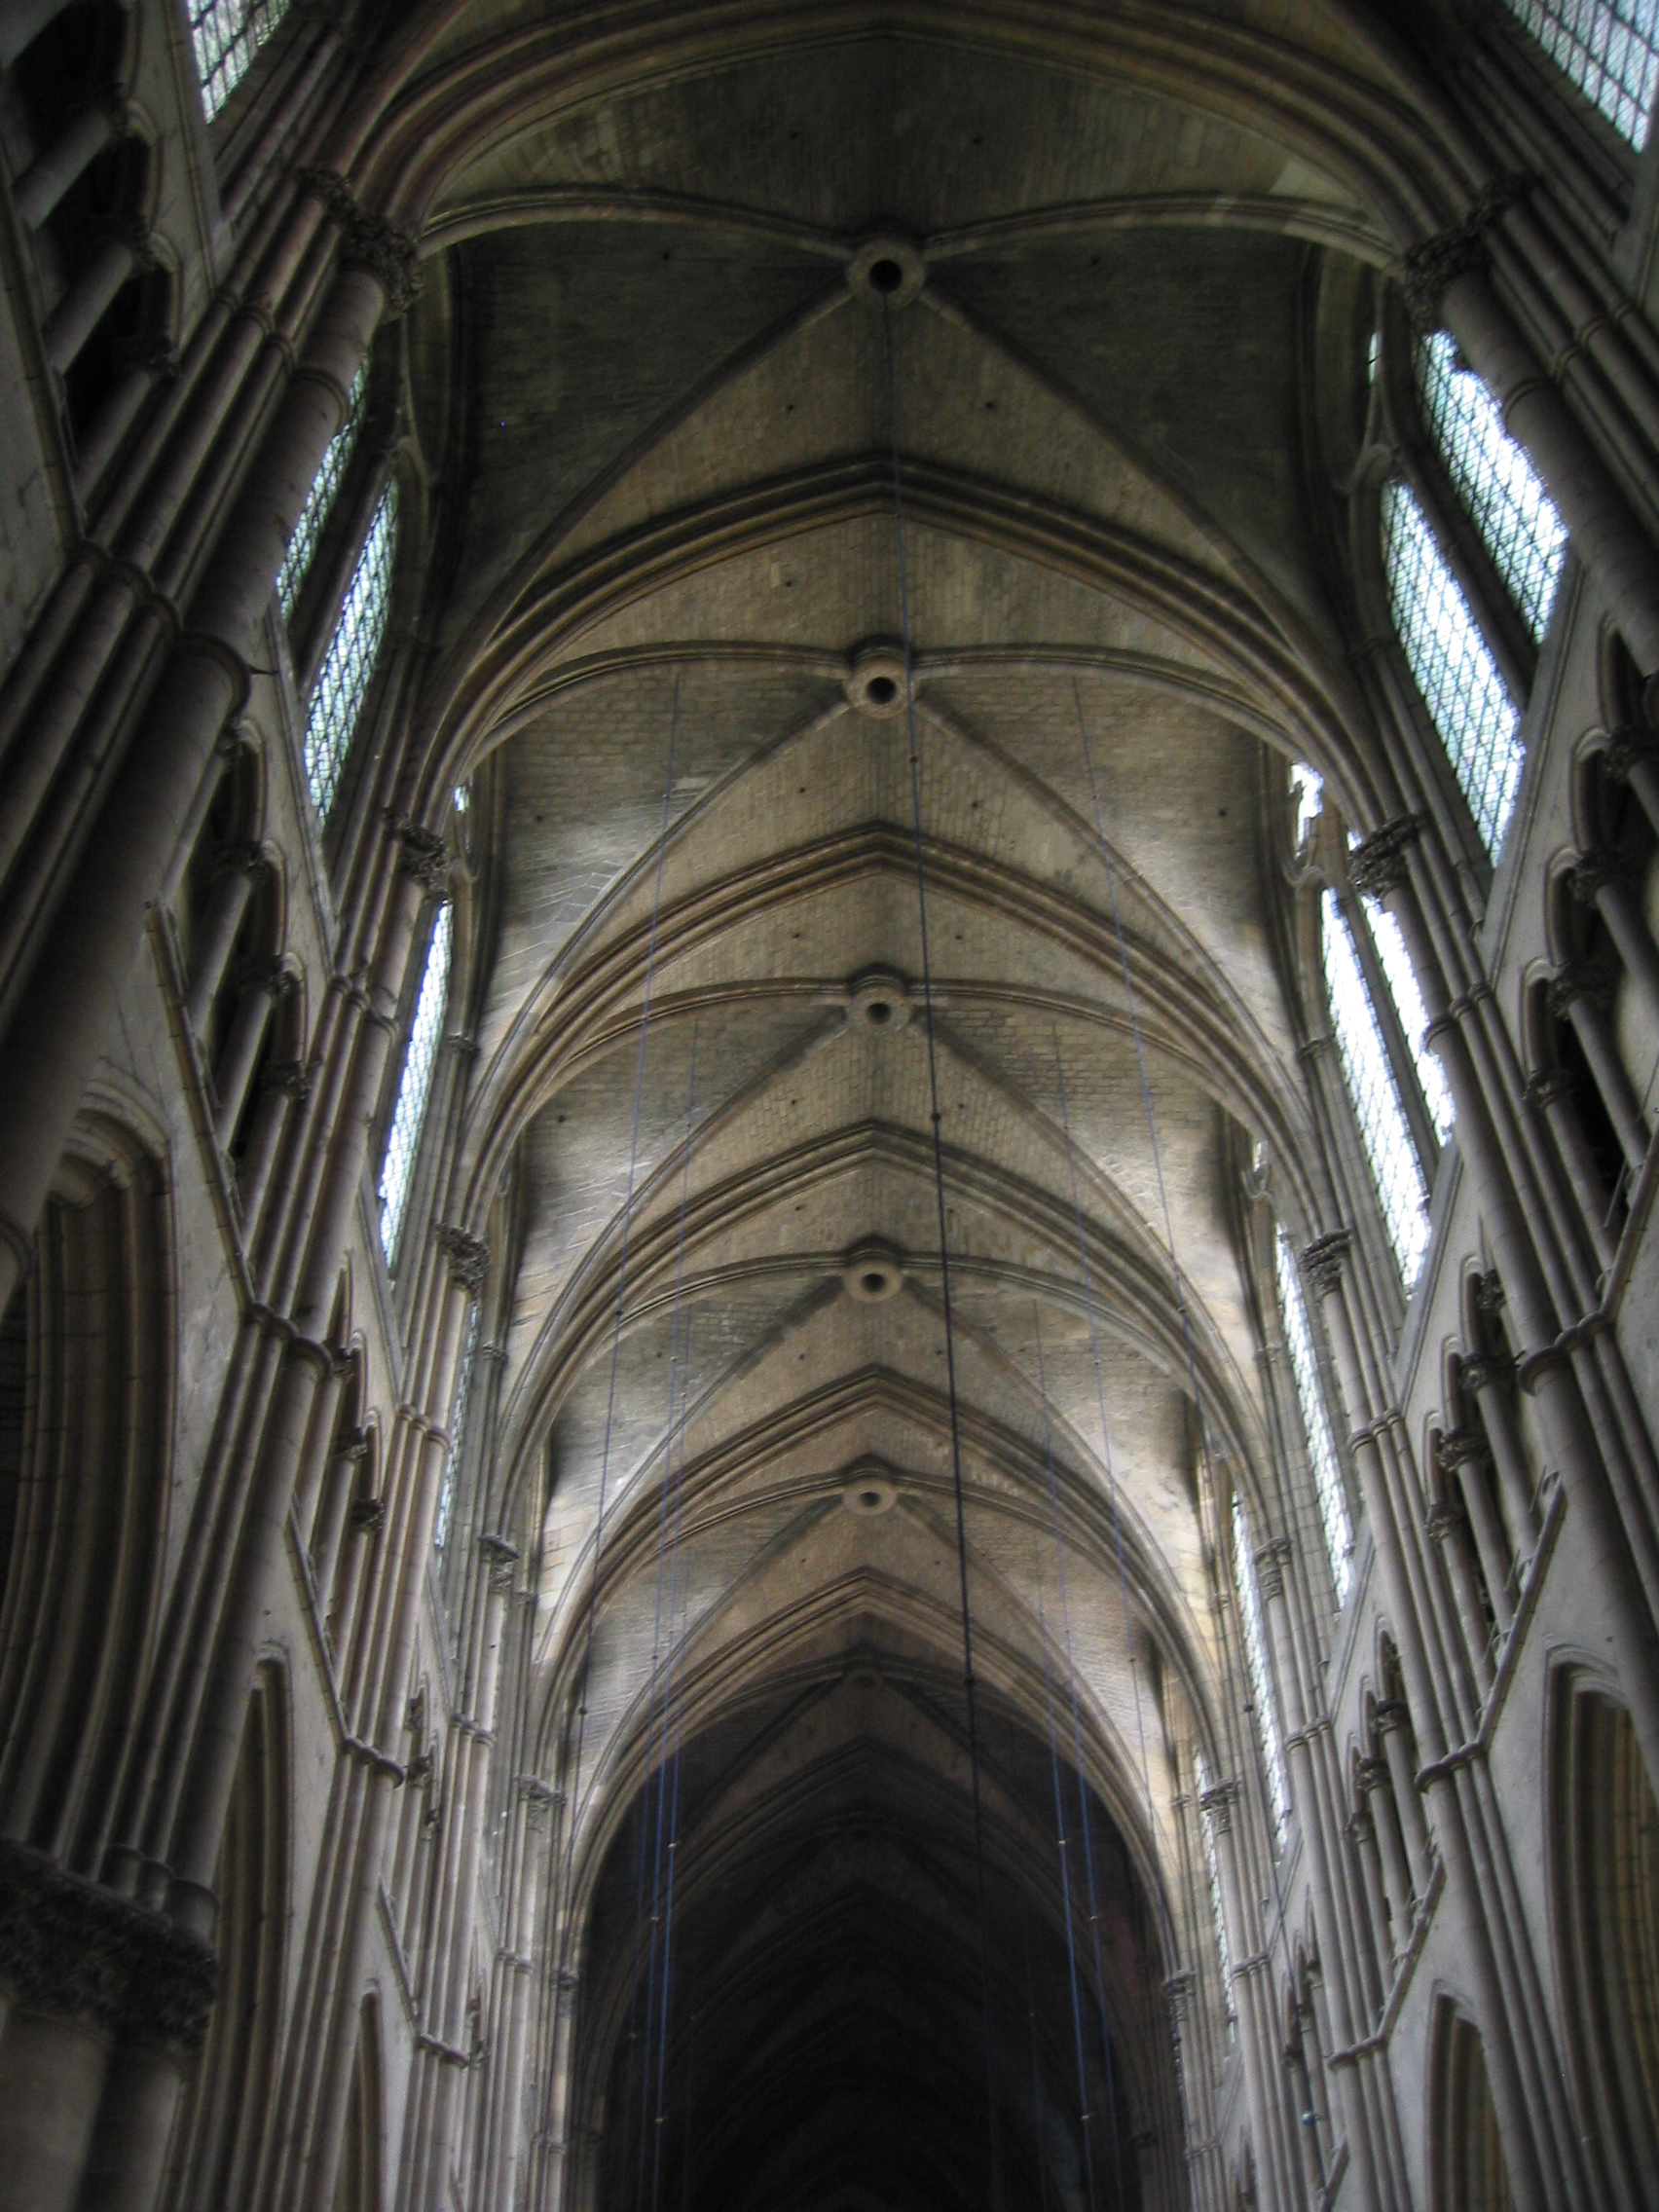 Ribbed Vault Of The Reims Cathedral (France).